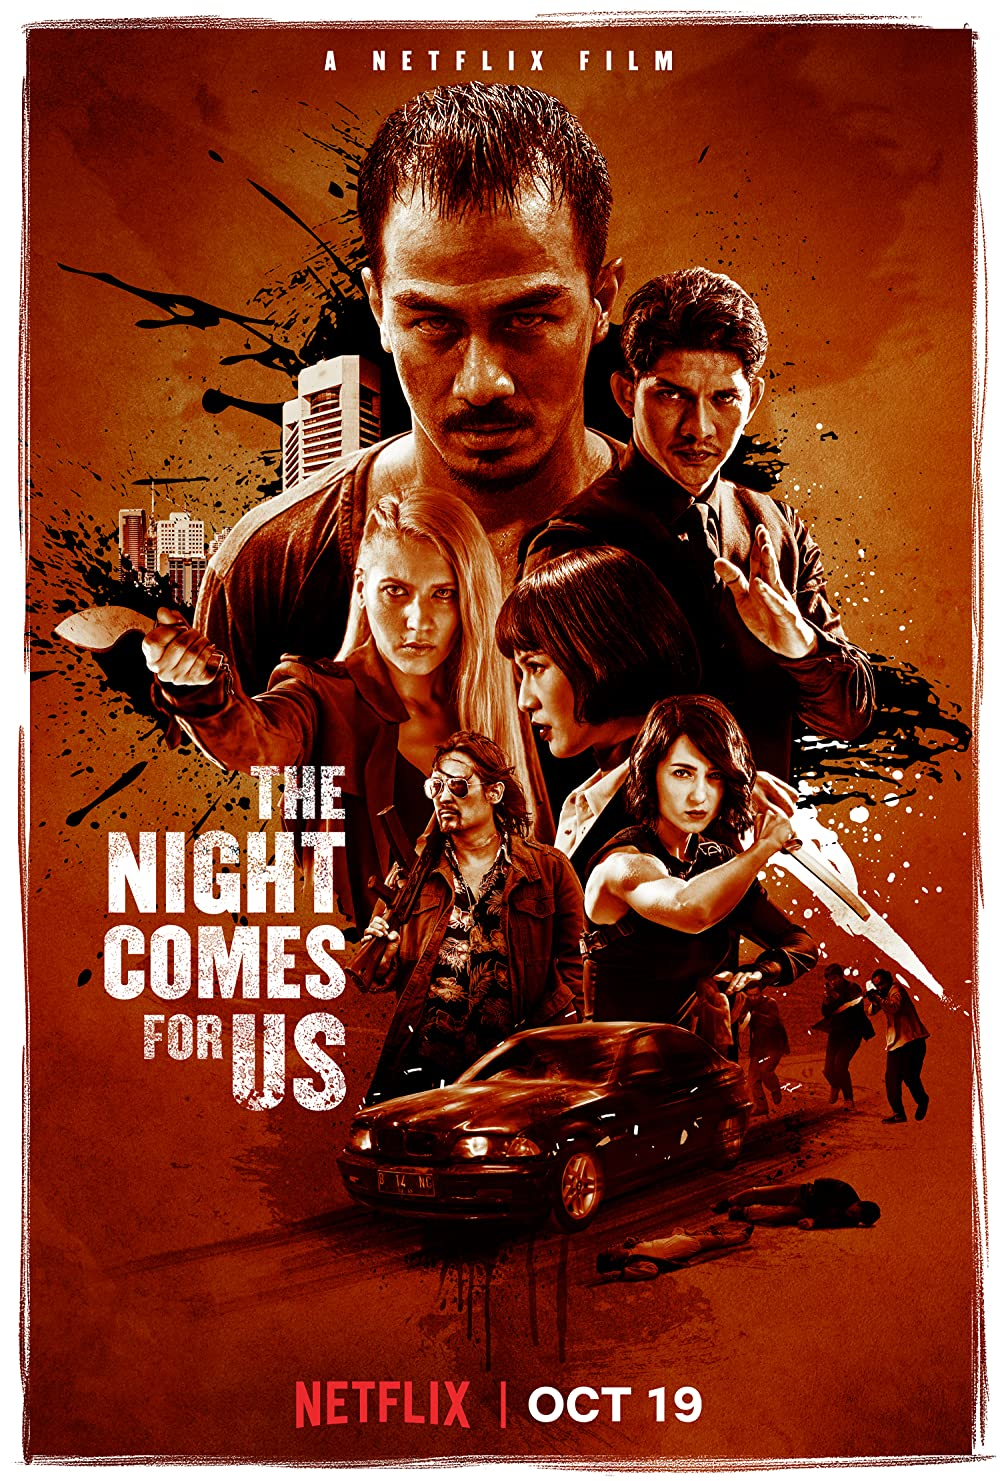 The Night Comes for Us online film